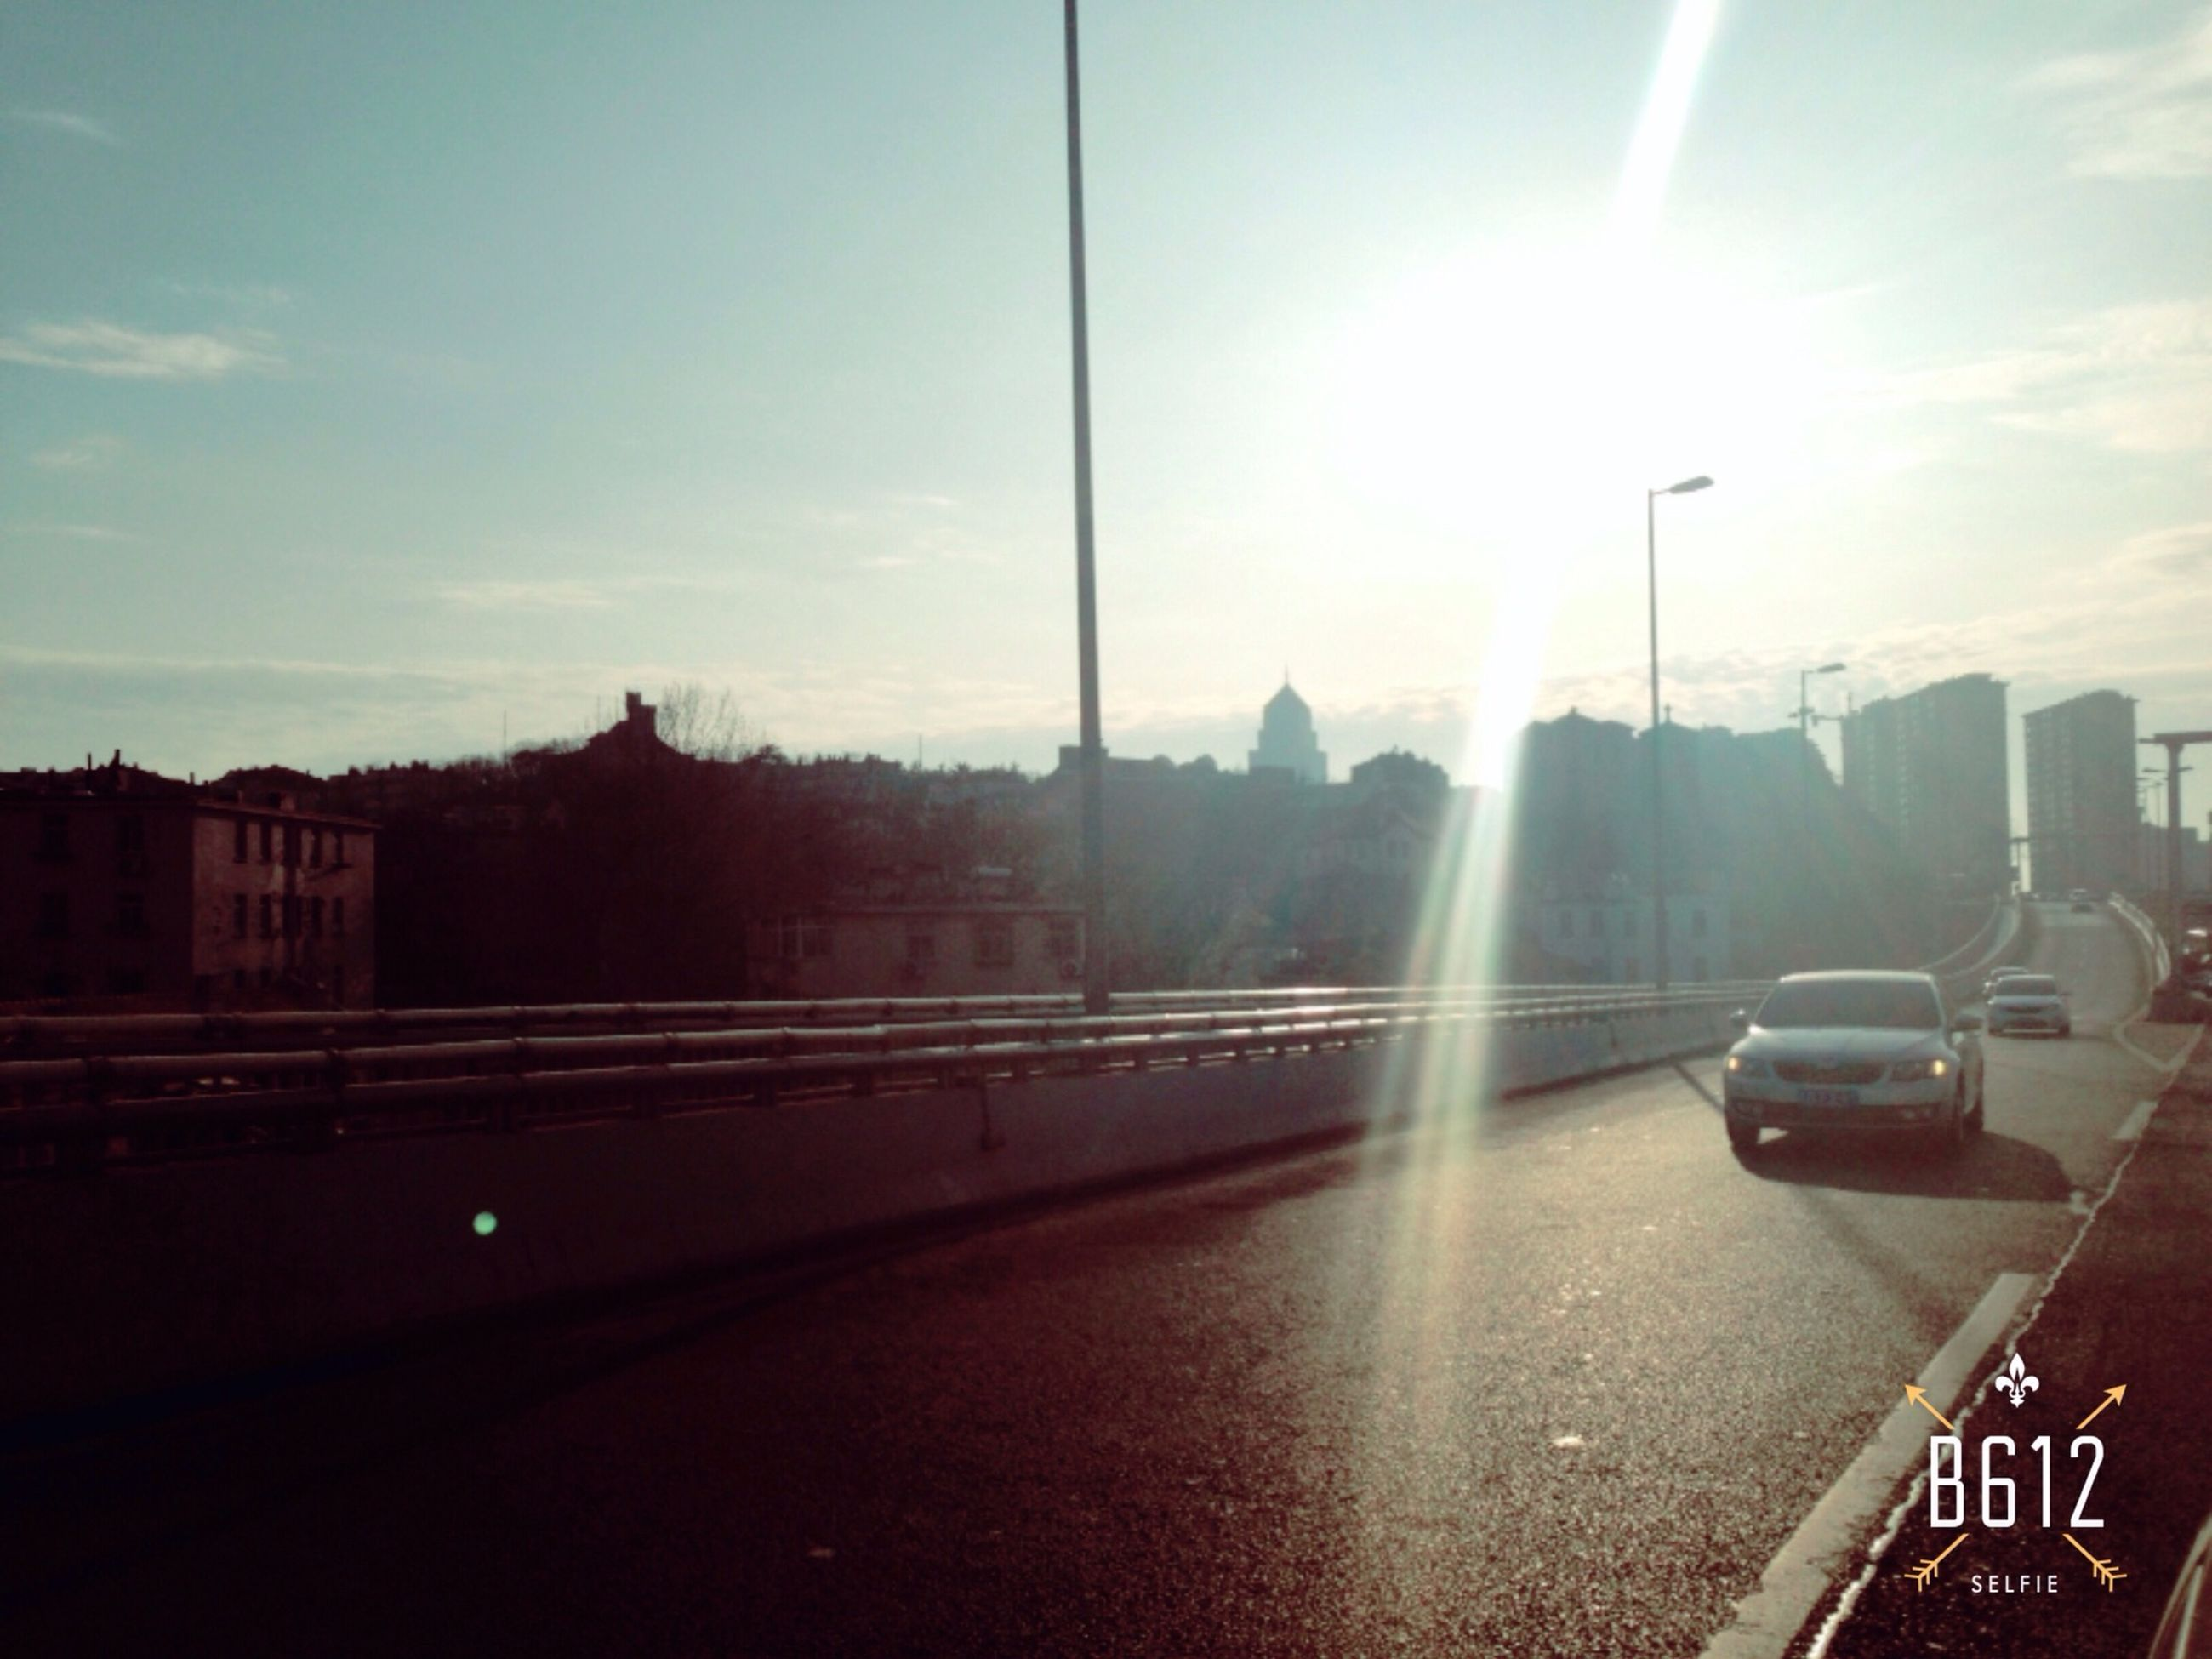 building exterior, architecture, sun, built structure, city, transportation, sky, sunlight, car, mode of transport, sunbeam, reflection, water, sunset, land vehicle, street, lens flare, road, no people, outdoors